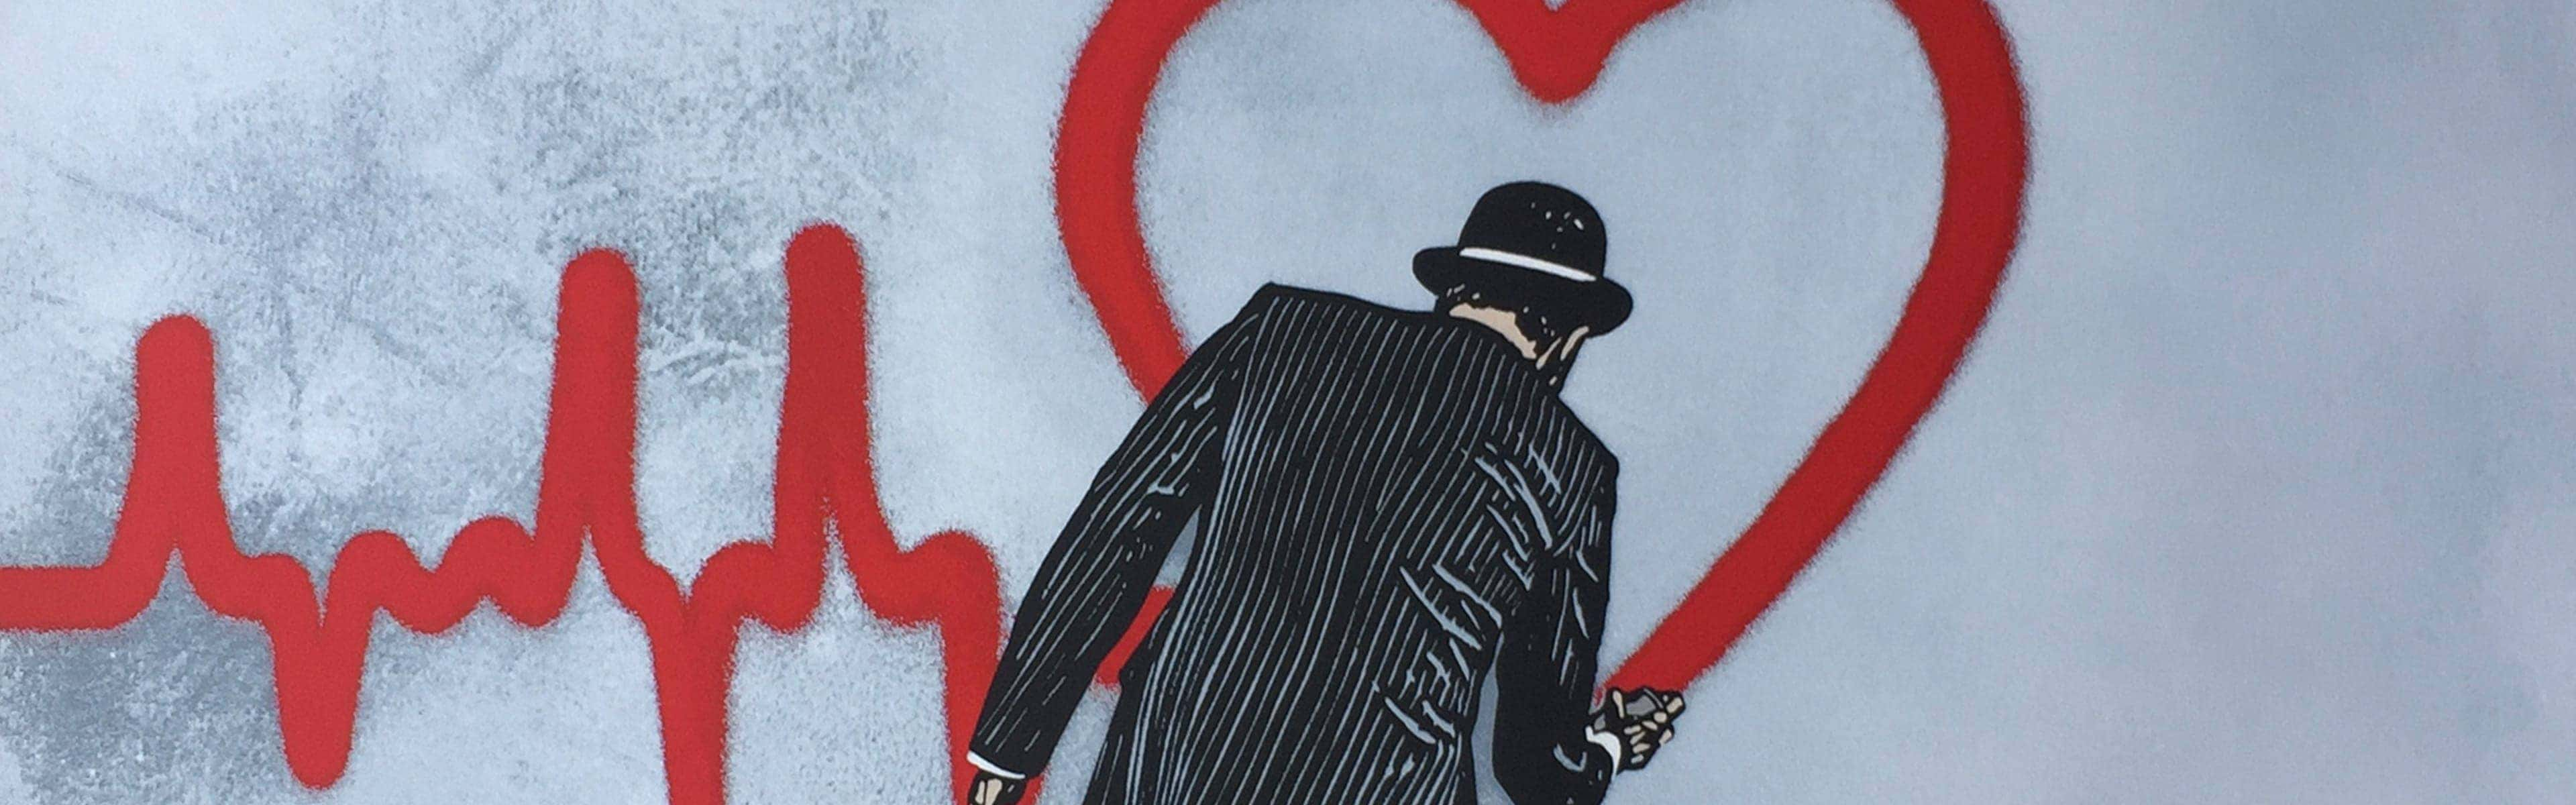 Nick Walker Artwork